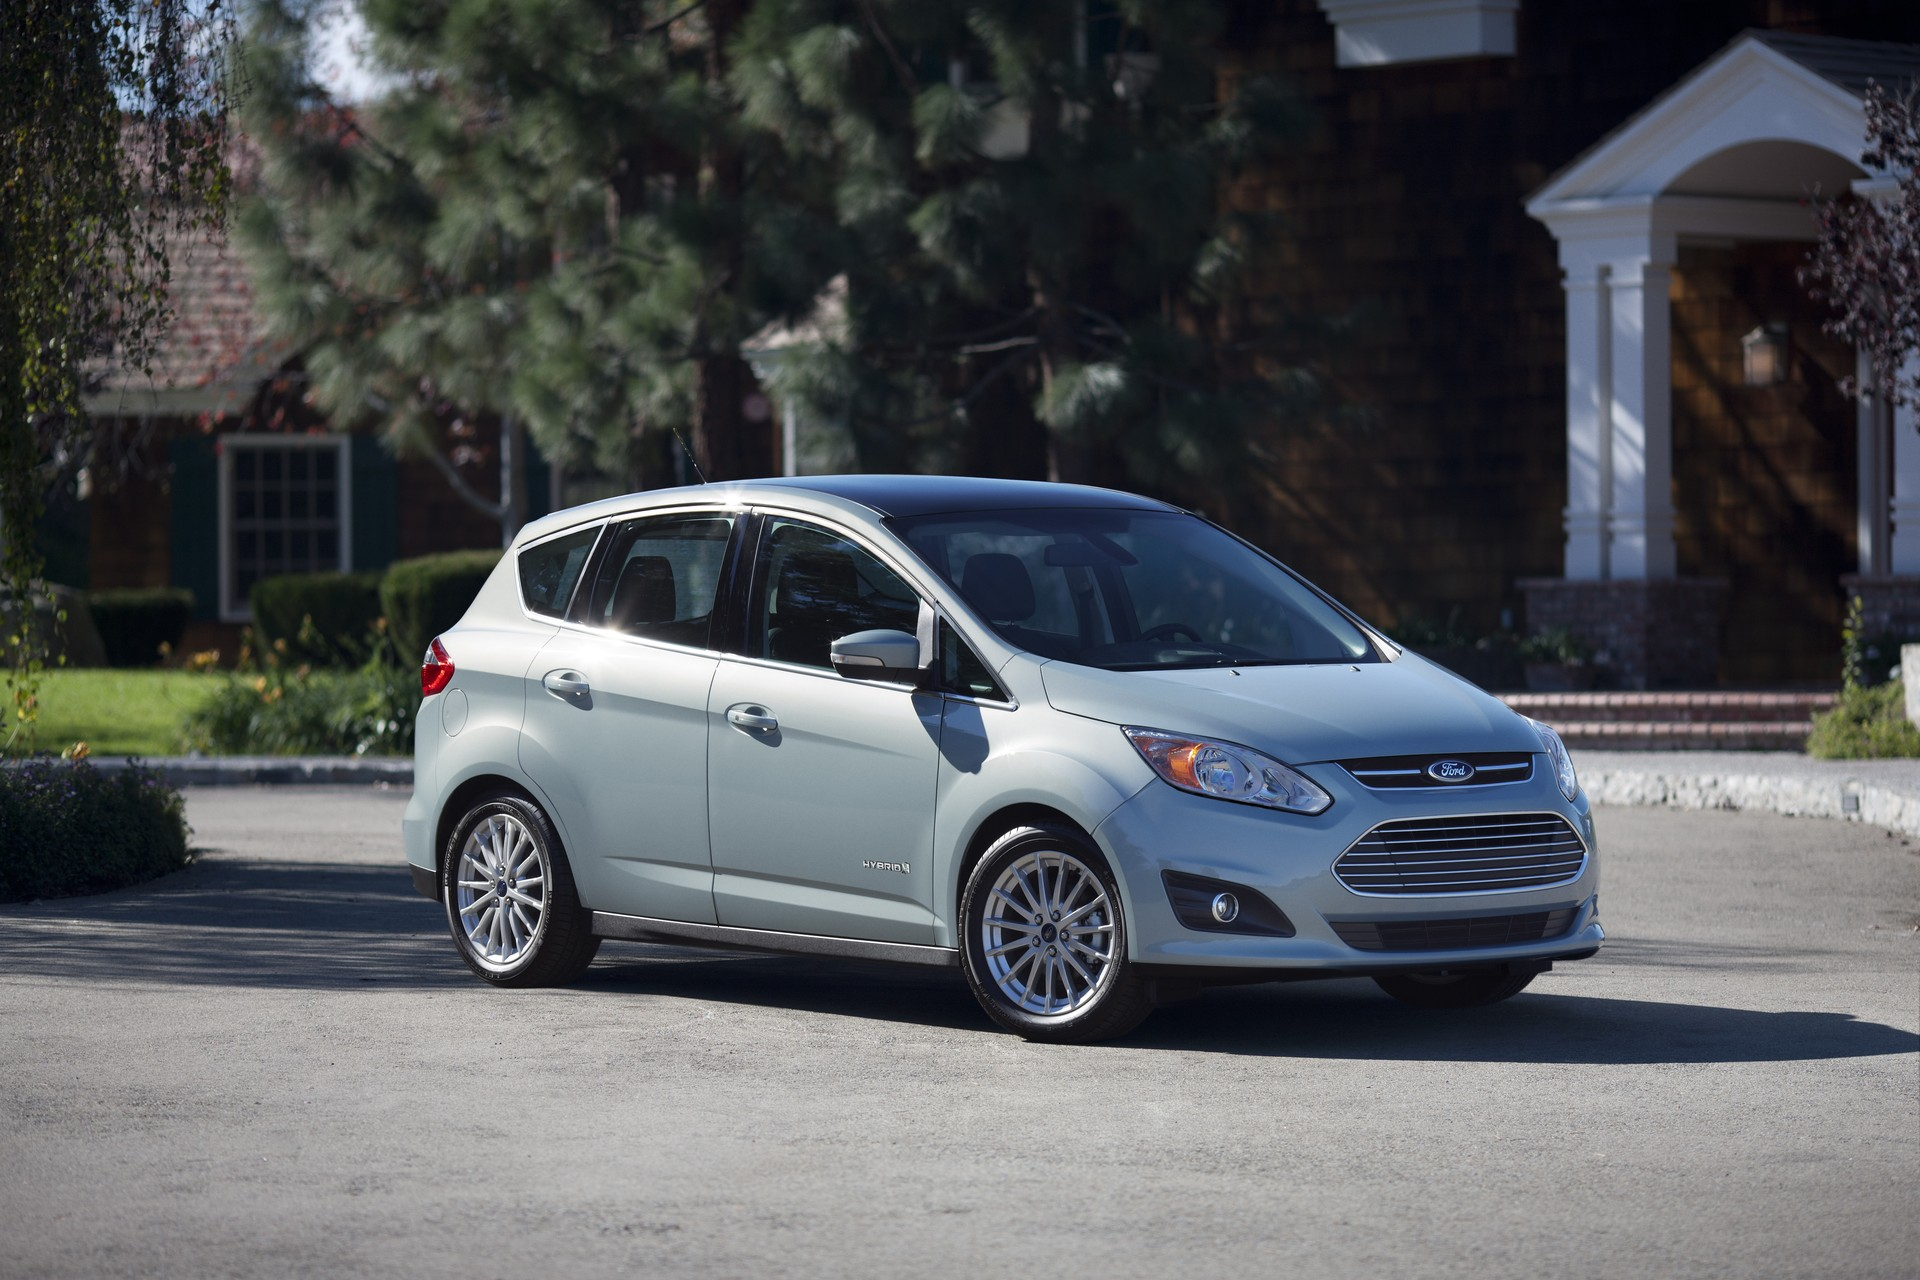 2015 Ford C-Max Ads To Downplay Twice-Cut Gas Mileage ...